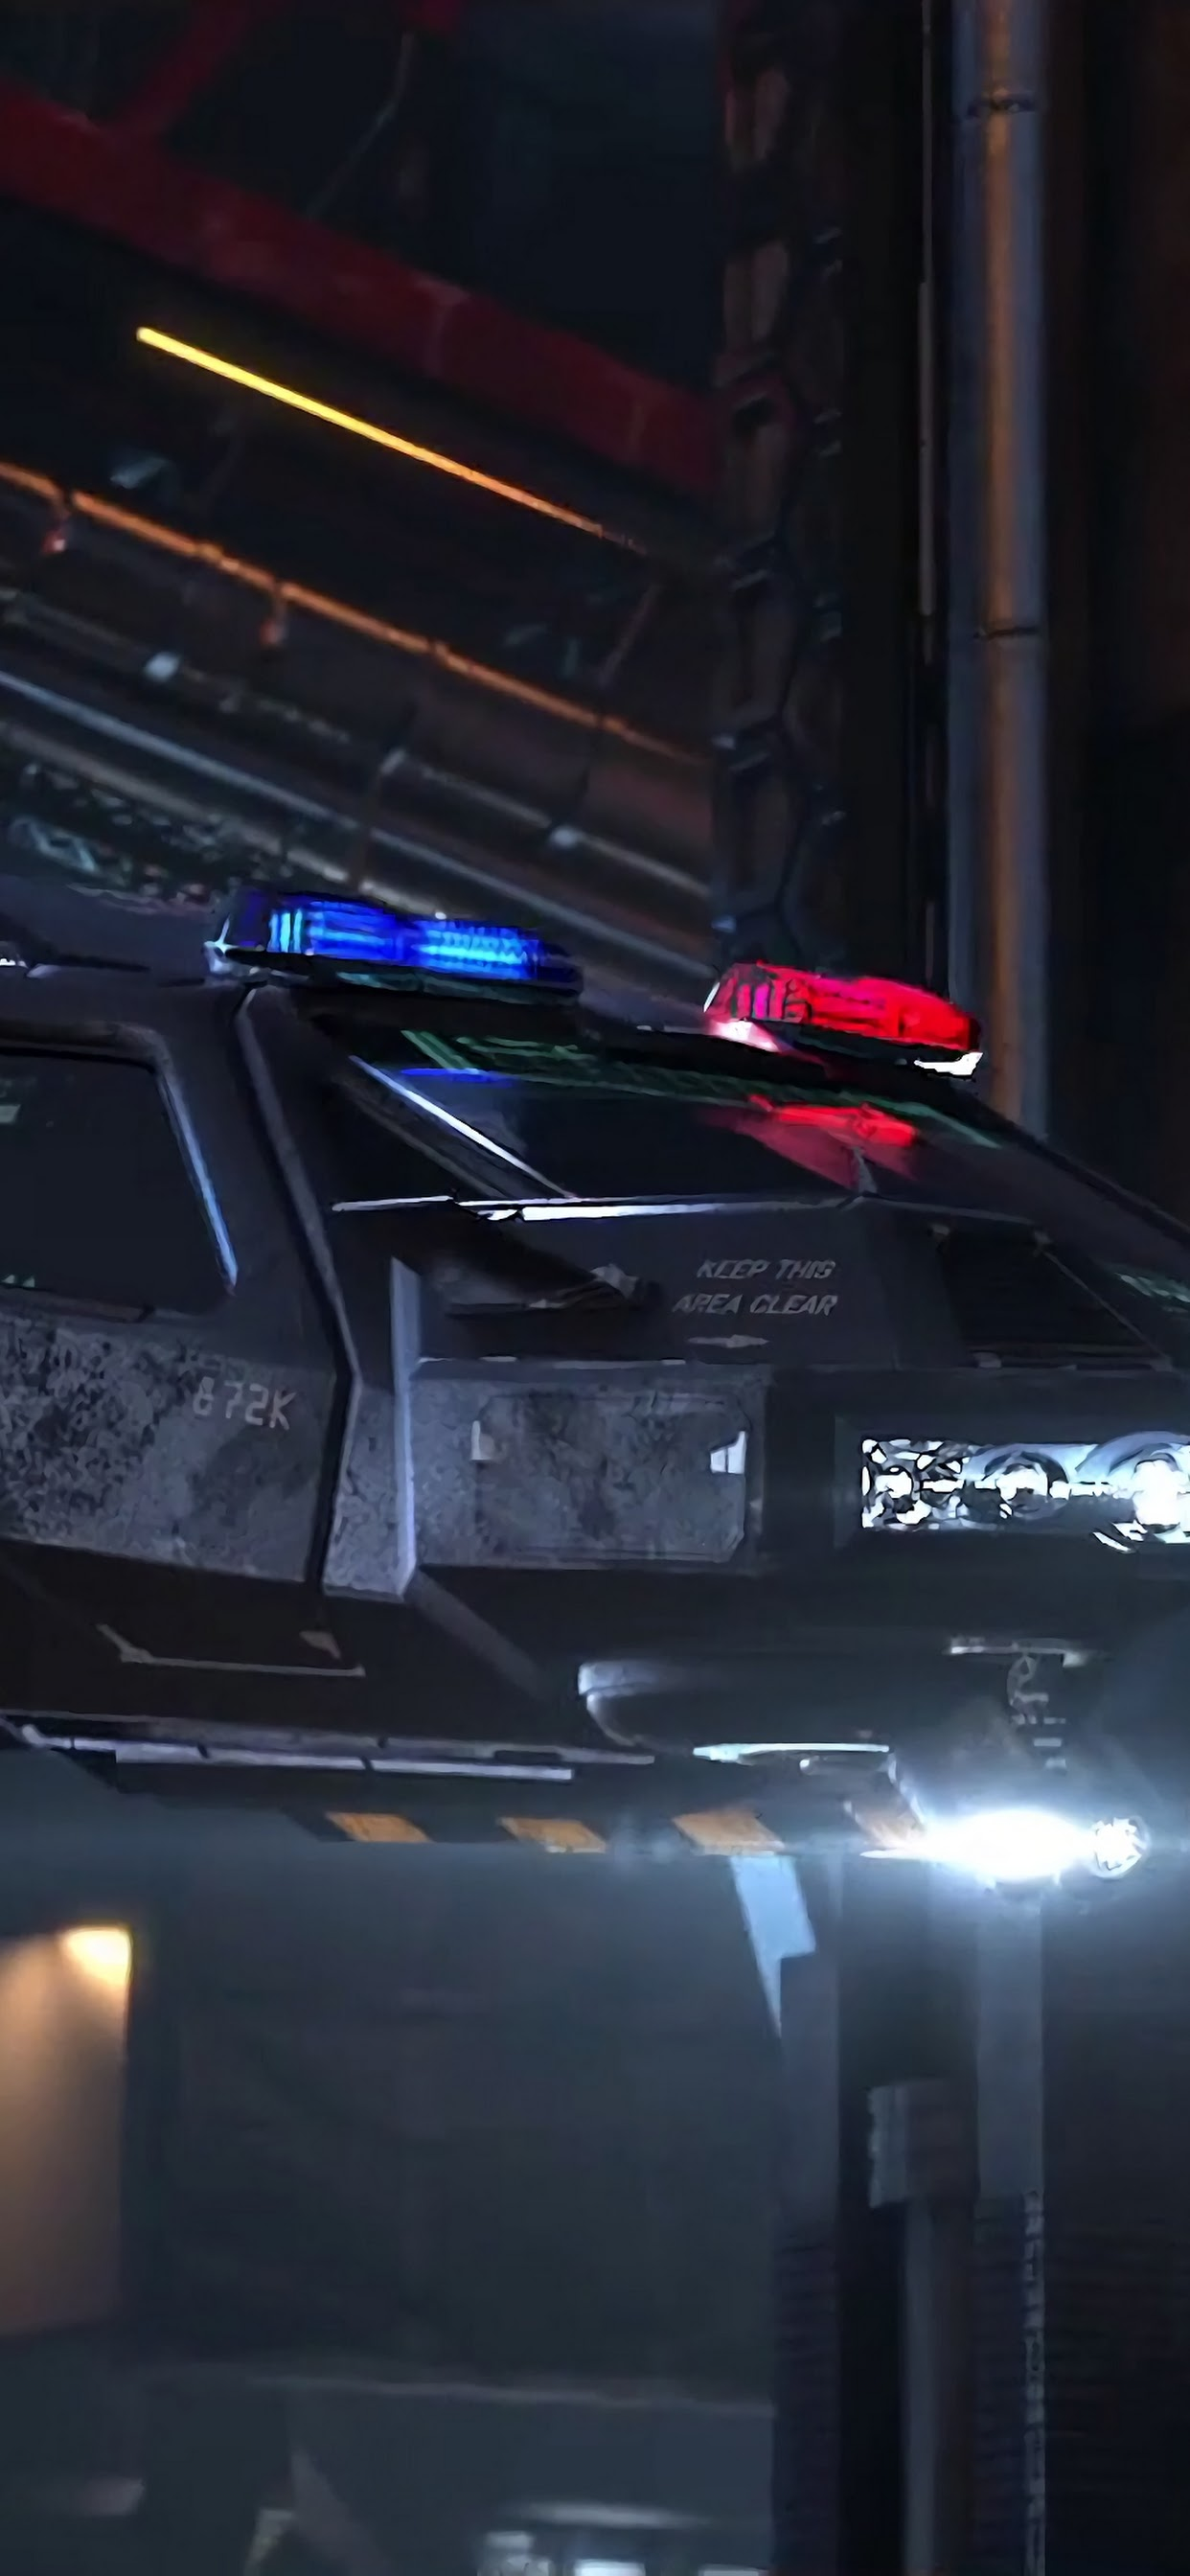 Exotics for your desktop, phone or tablet. Cyberpunk 2077 Police Car 4k Iphone 11 Pro Wallpaper Cars 1242x2688 Wallpaper Teahub Io